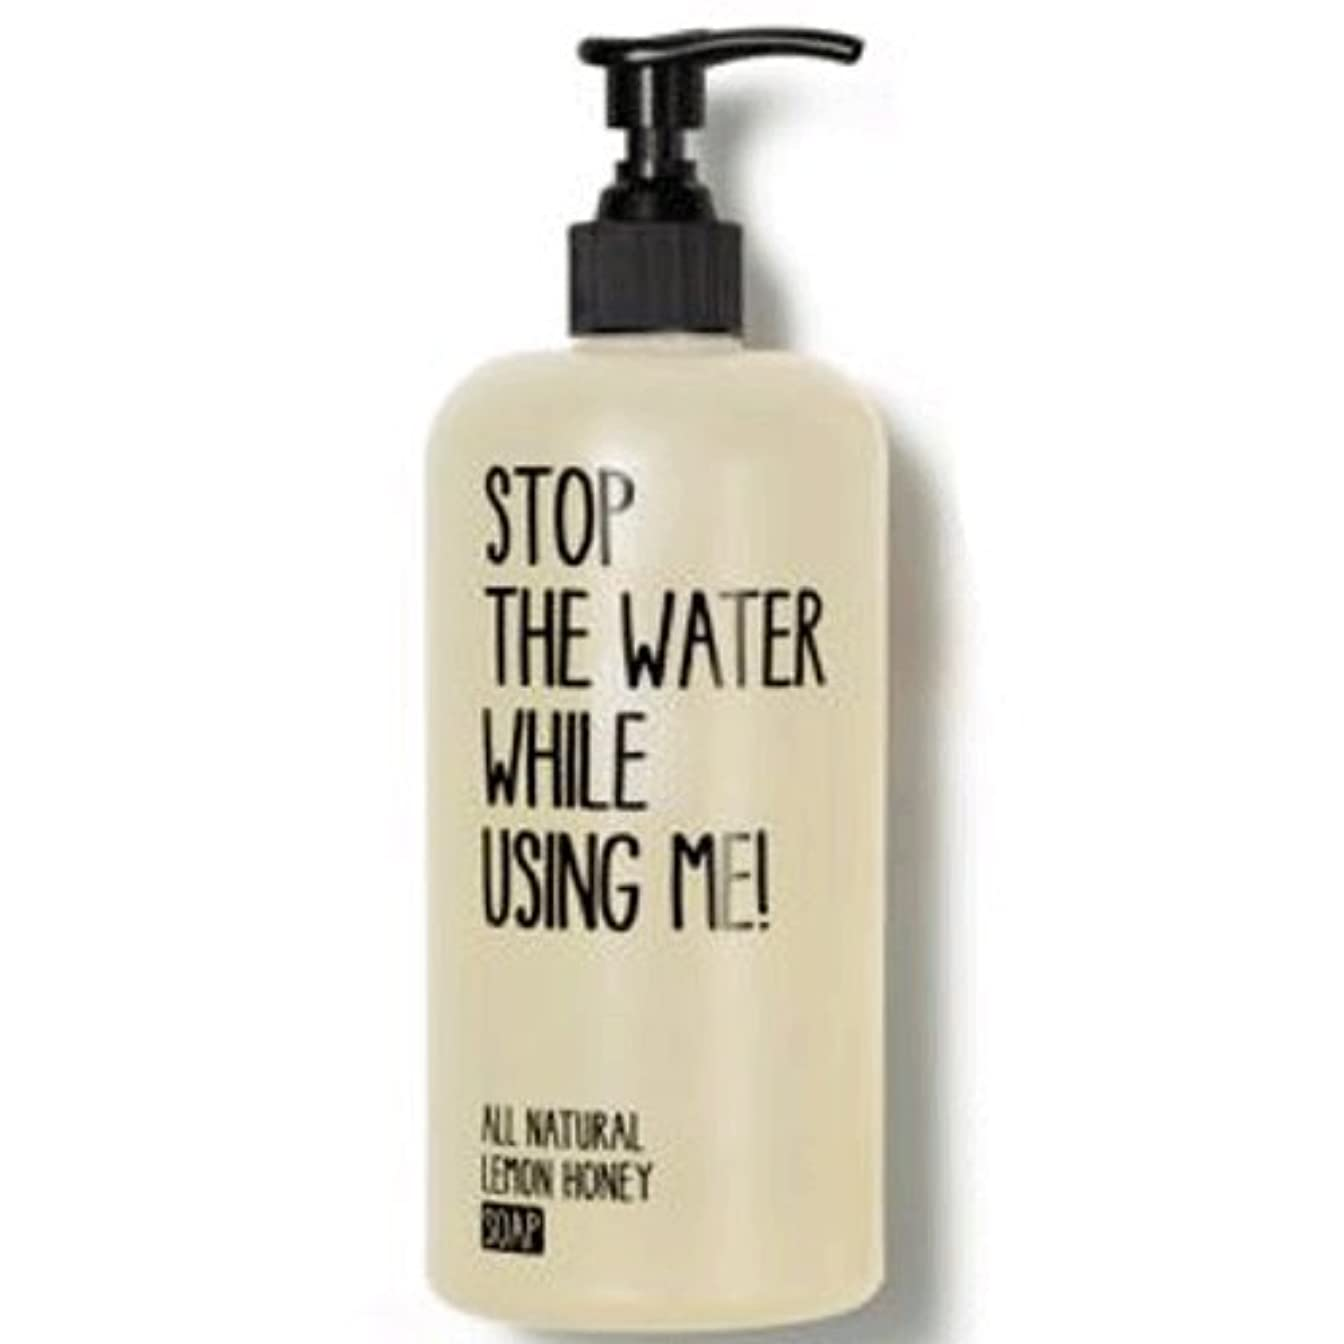 【STOP THE WATER WHILE USING ME!】L&Hソープ(レモン&ハニー) 500ml [並行輸入品]